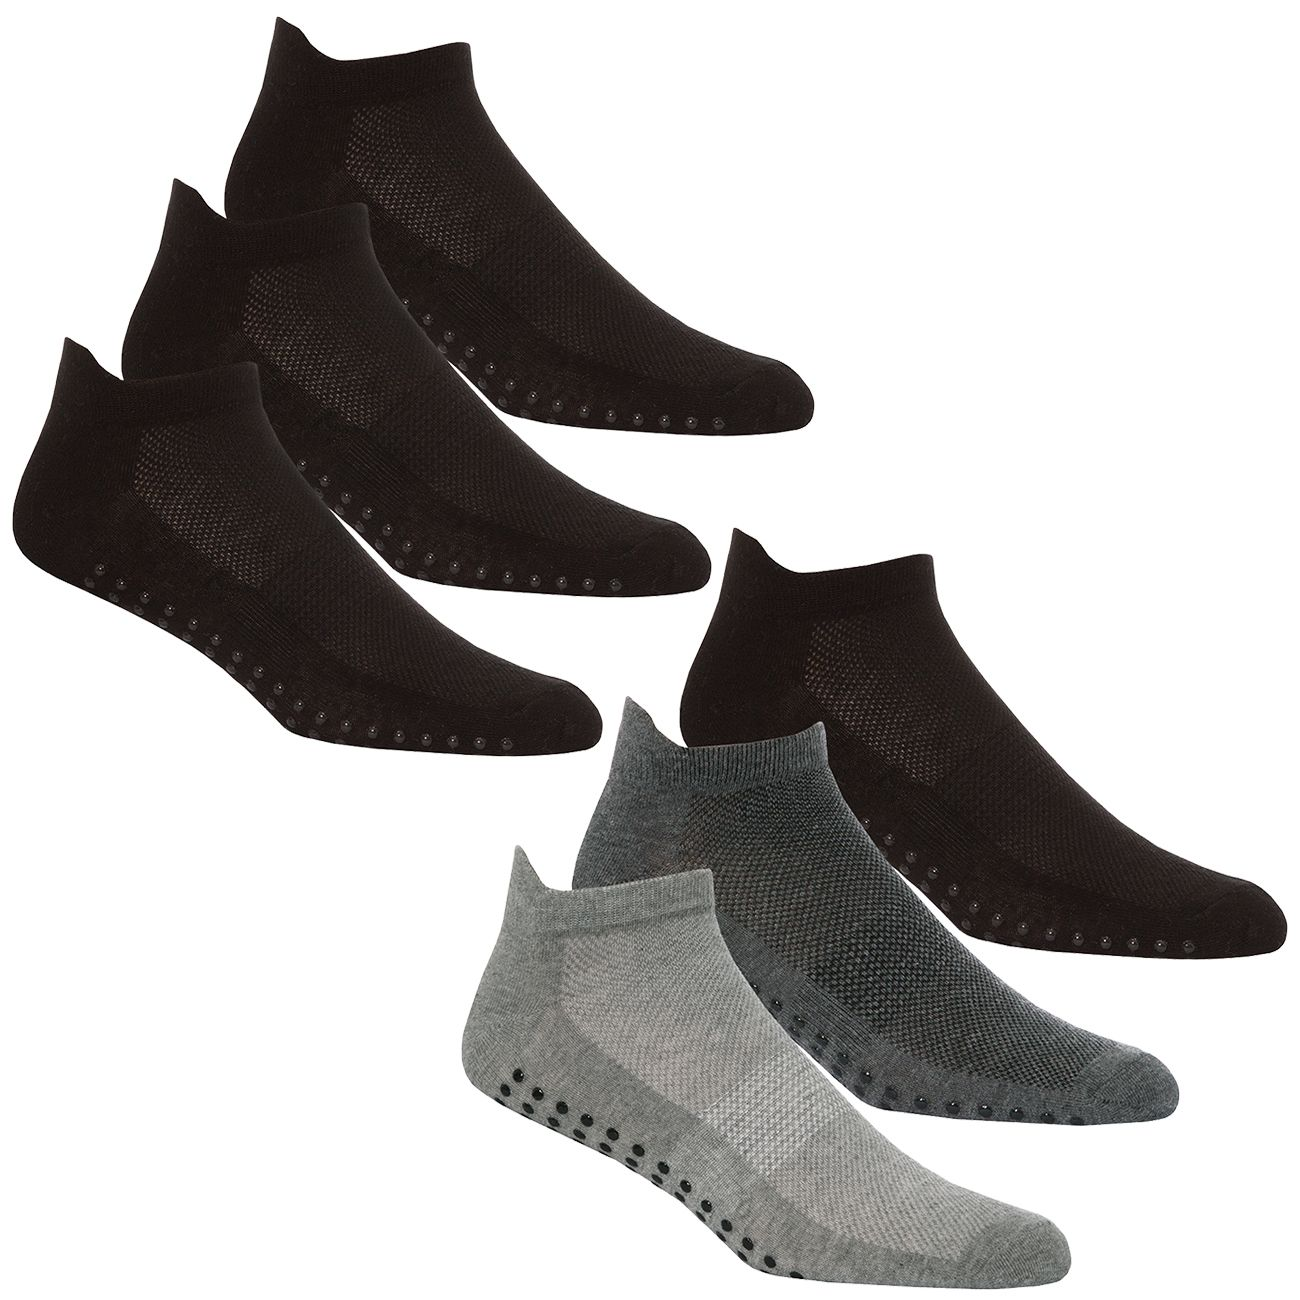 40B502, Mens 3 in a pack Sports Trainer Liner Socks £1.45.  36pks...